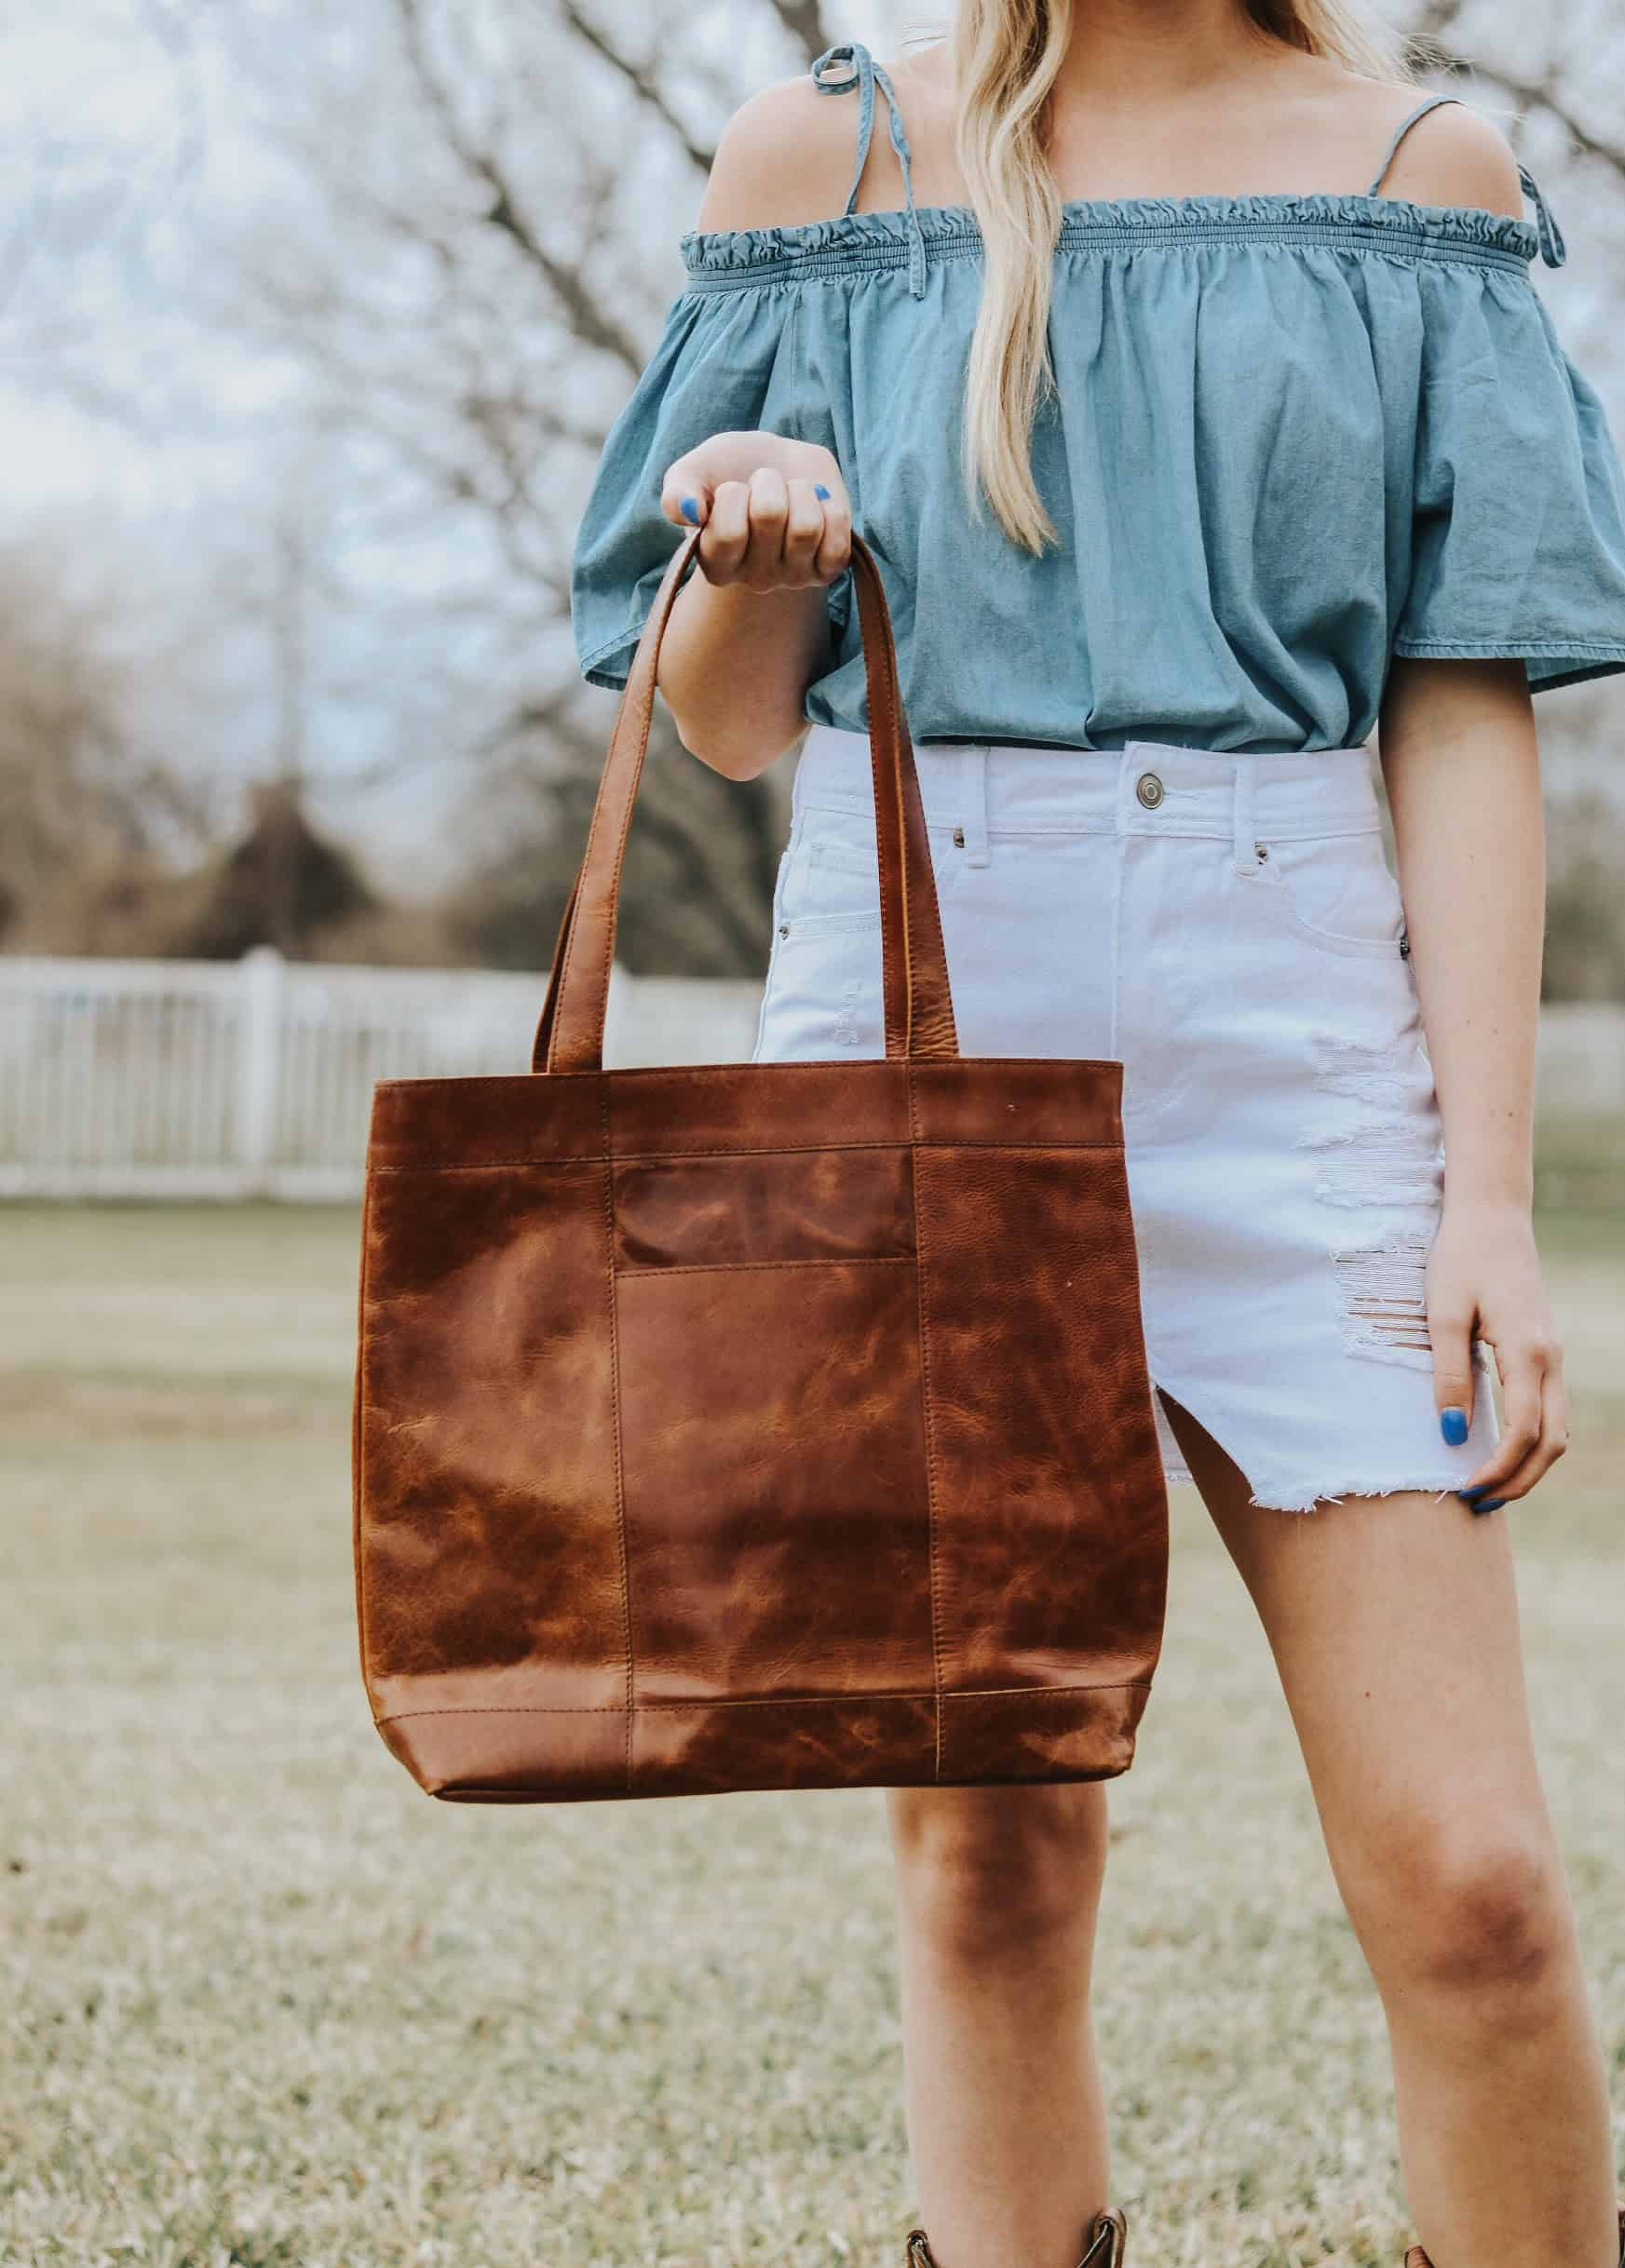 The Everyday Essential Tote